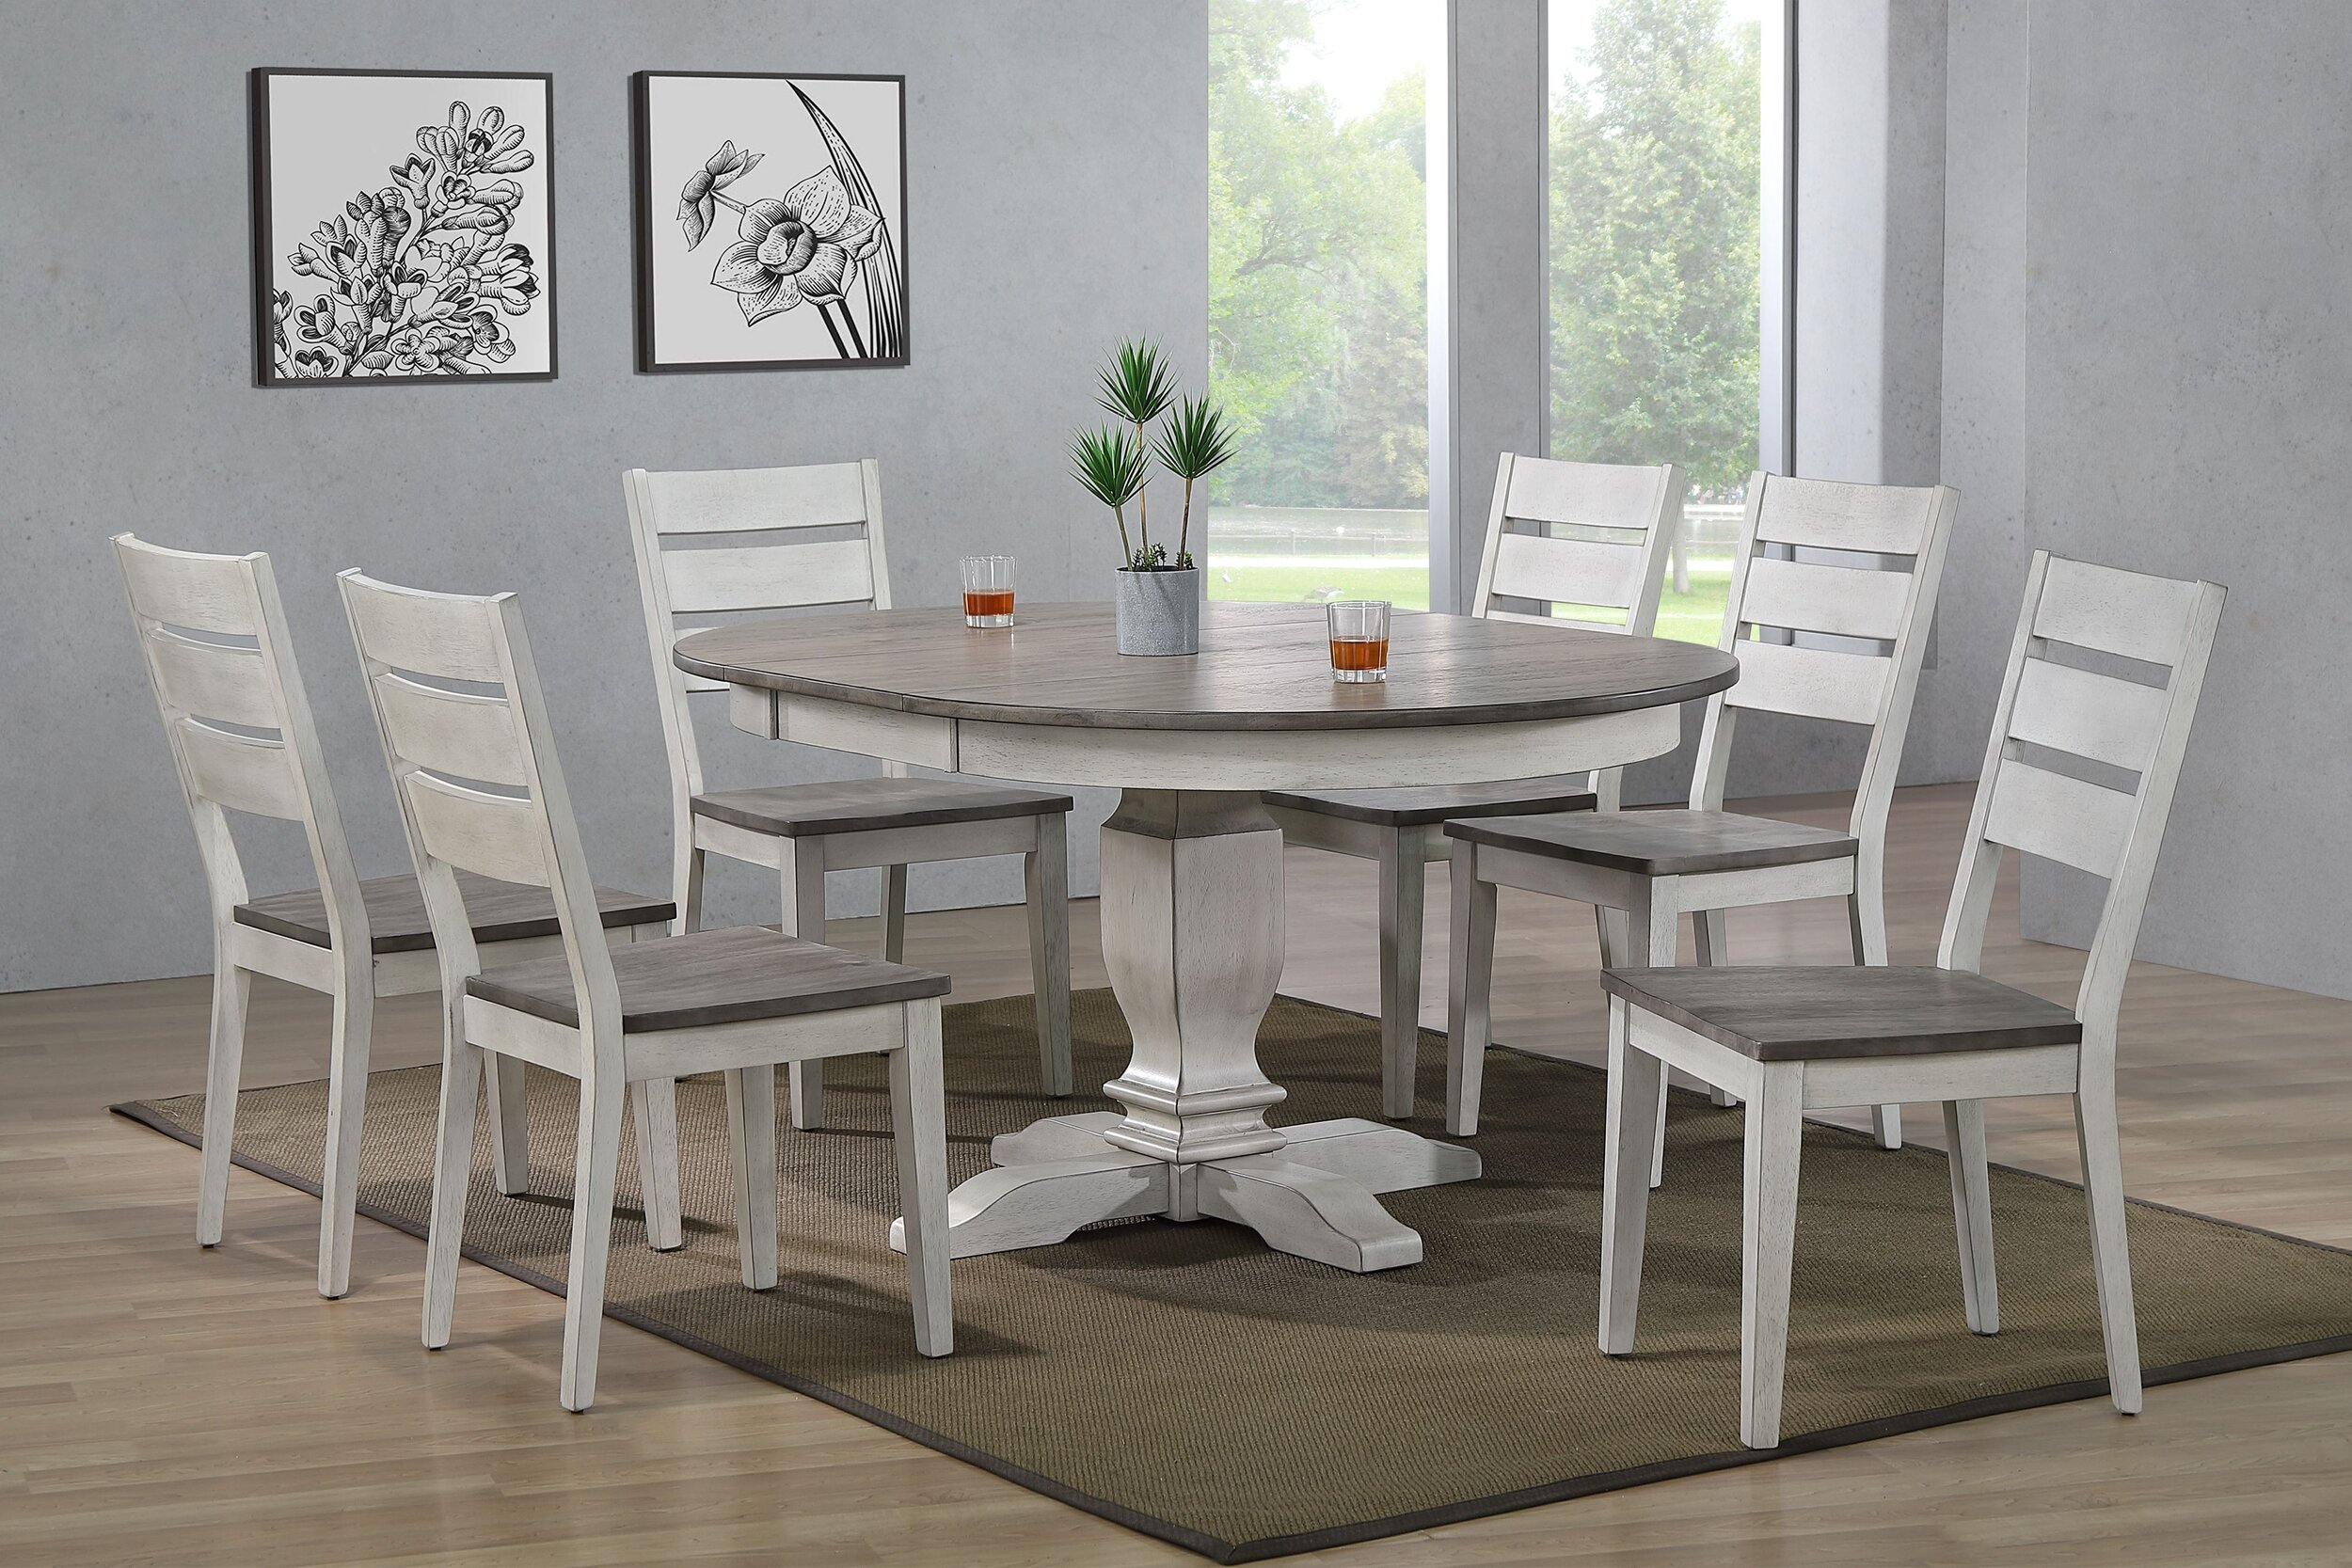 "45""x45""x63"" Transitional Table In Ash & Stormy White With Contemporary Ladder Back Chairs (7-Piece Dining Set)"